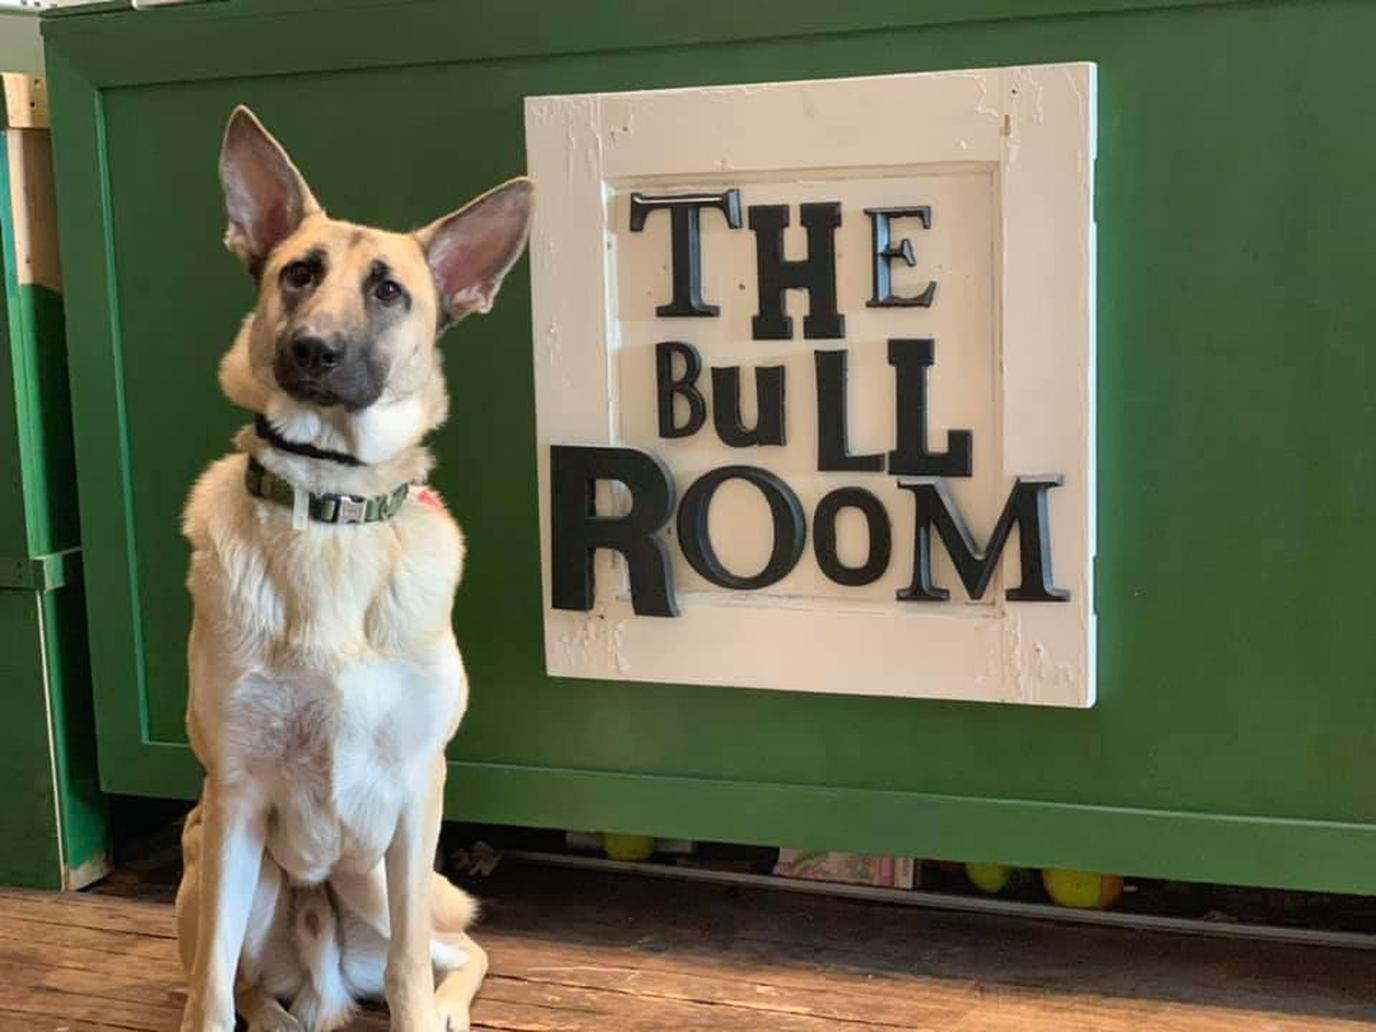 Leashed dogs are welcome at paint classes at The Bull Room in Aberdeen, NC.